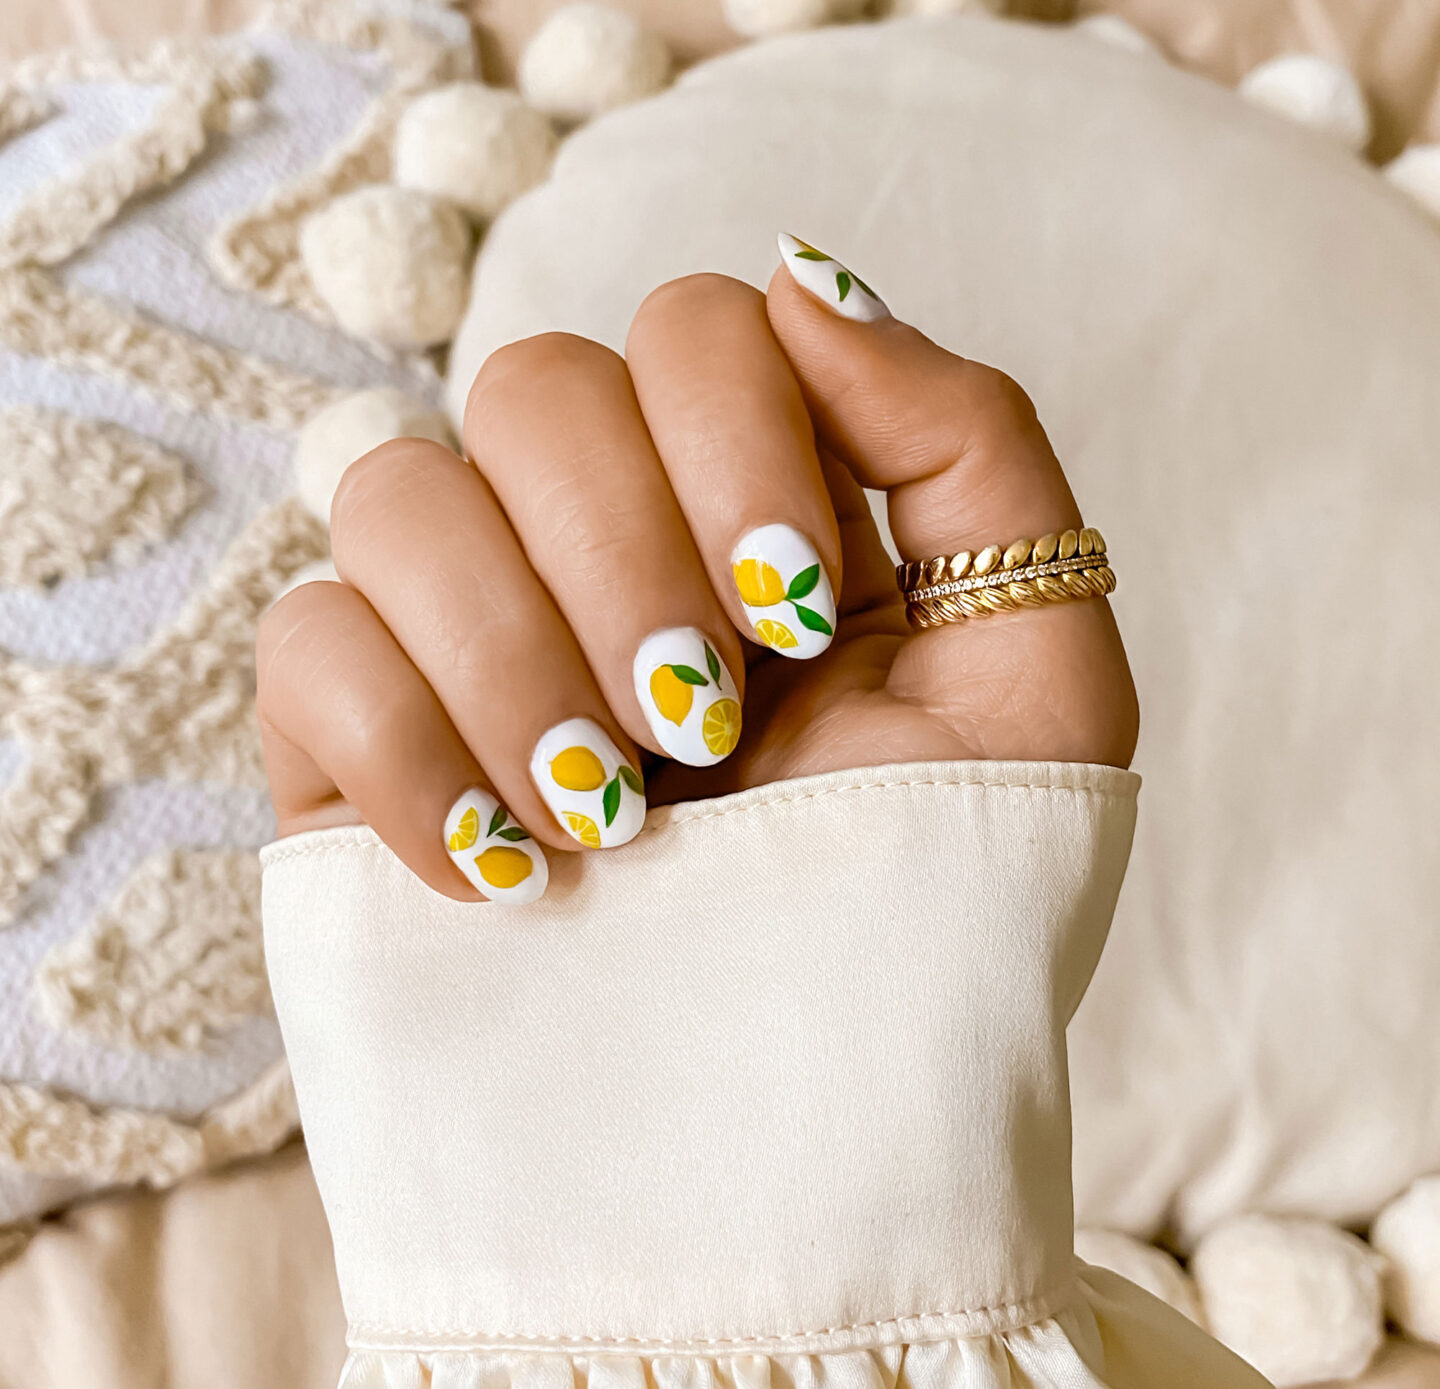 3-kelseyinlondon-kelsey-heinrichs-growing-nails-how-to-grow-your-nails-nail-art-ideas-nail-decals-diy-gel-manicure